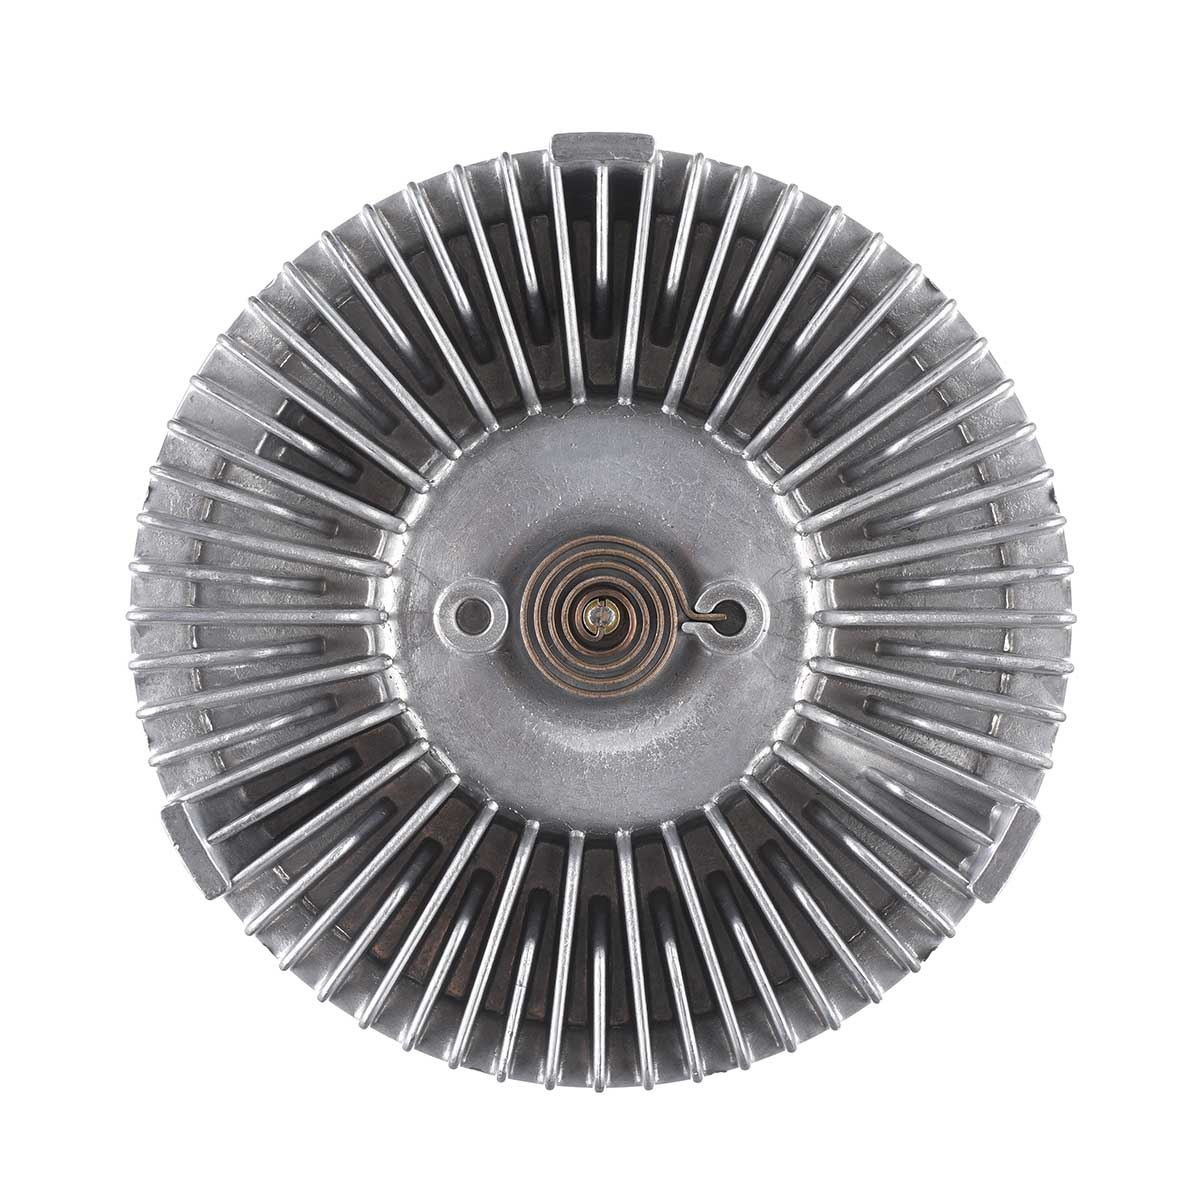 small resolution of cooling fan clutch for ford explorer sport trac mercury mountaineer 2001 2005 lincoln aviator 4 0l 4 6l ccw 4l2z8a616aa 2776 in fans kits from automobiles